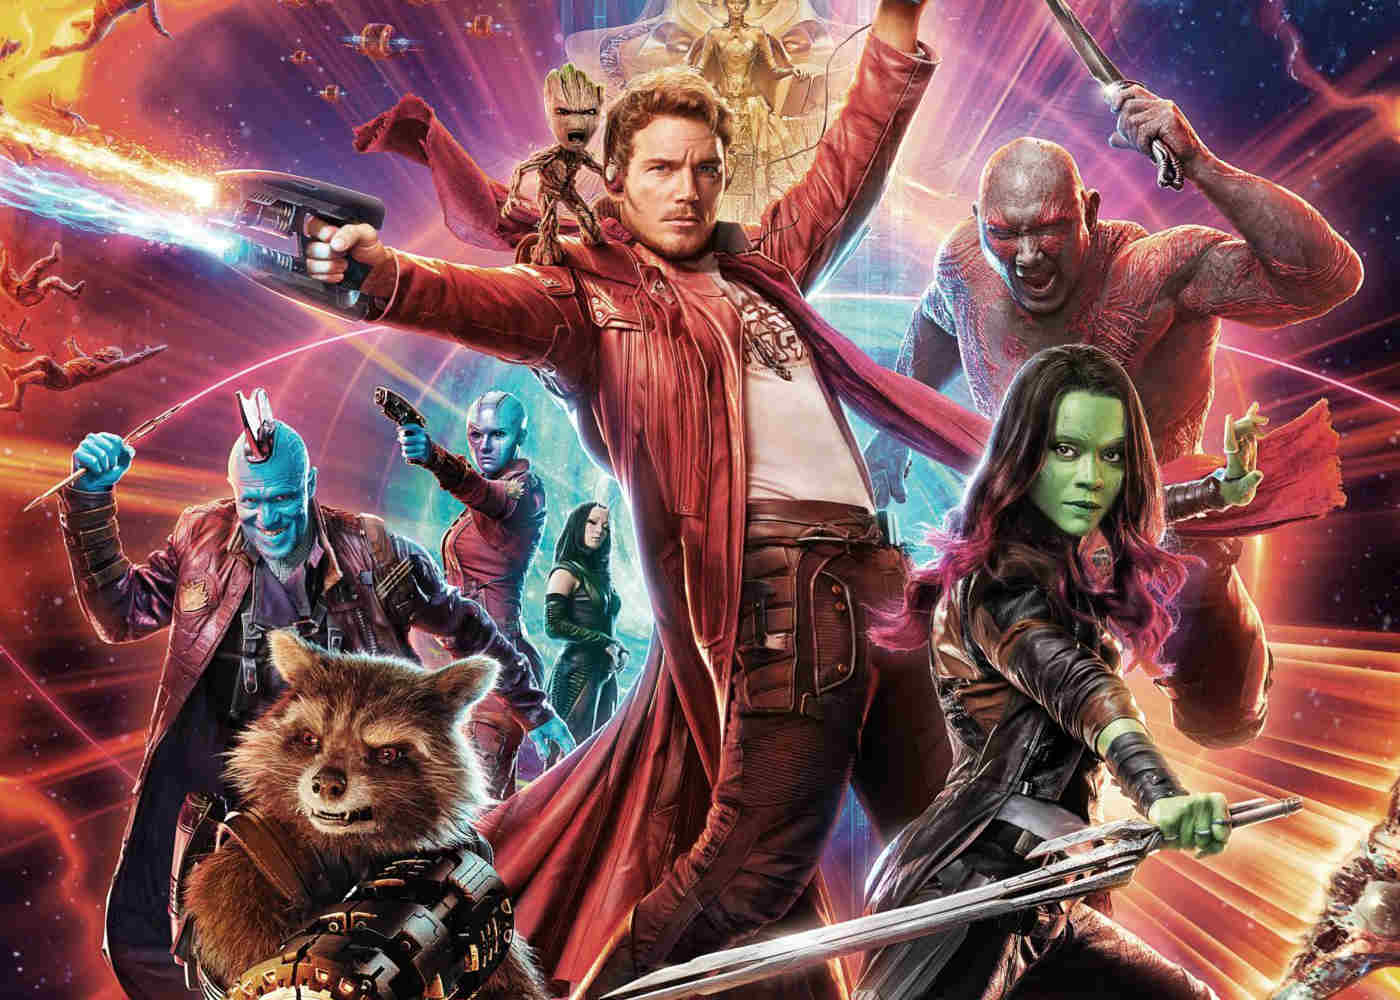 James Gunn: Guardians of the Galaxy Vol. 3 Will Shape the Future of the MCU for Decades.